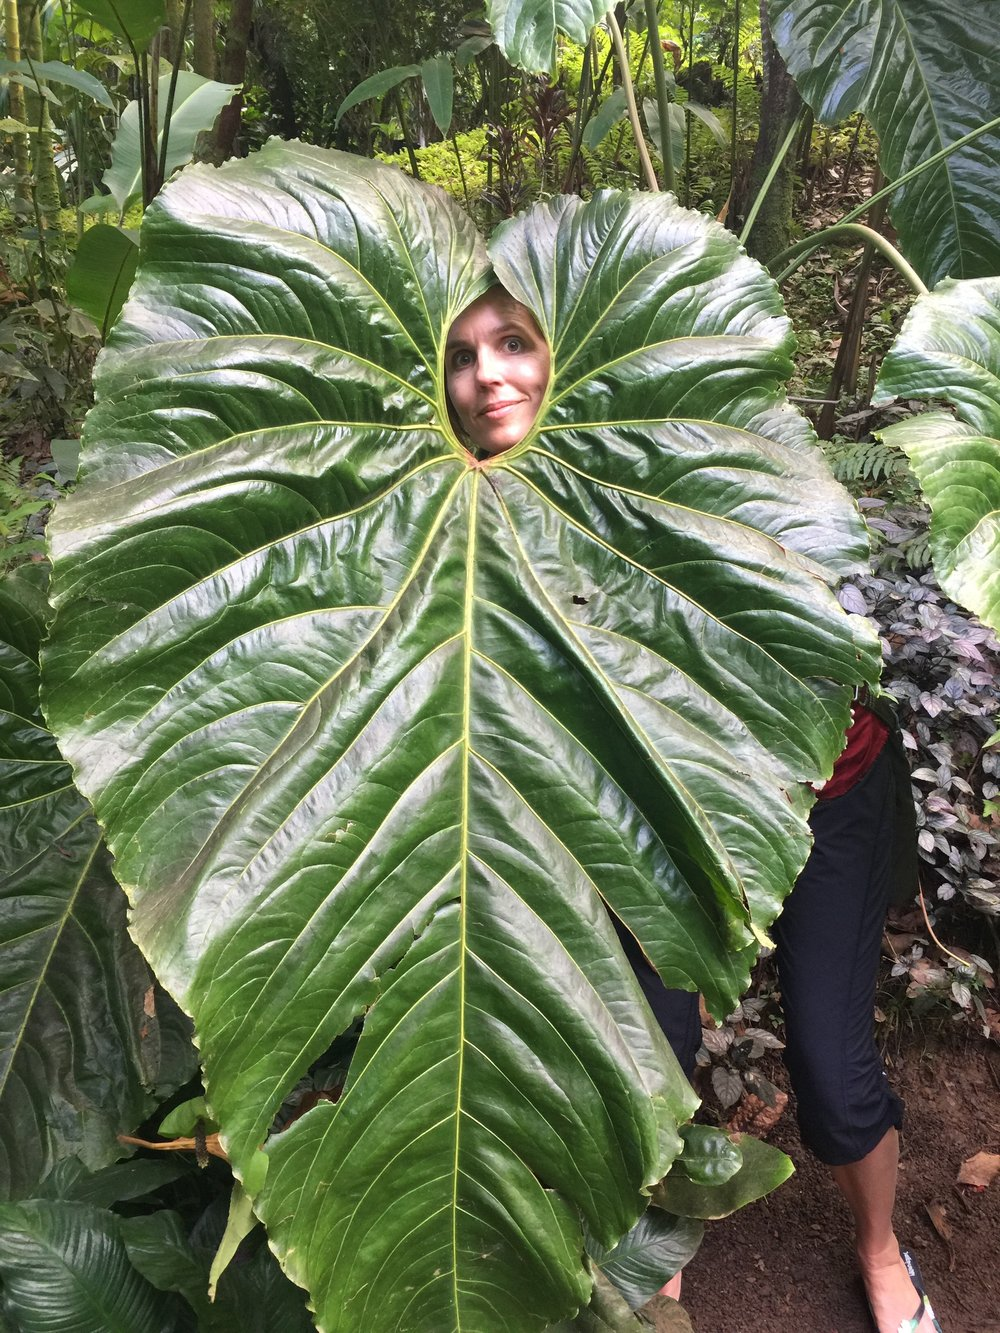 I'm about 6'2, so you can get a sense of how tall this leaf is at the Hilo botanical garden.